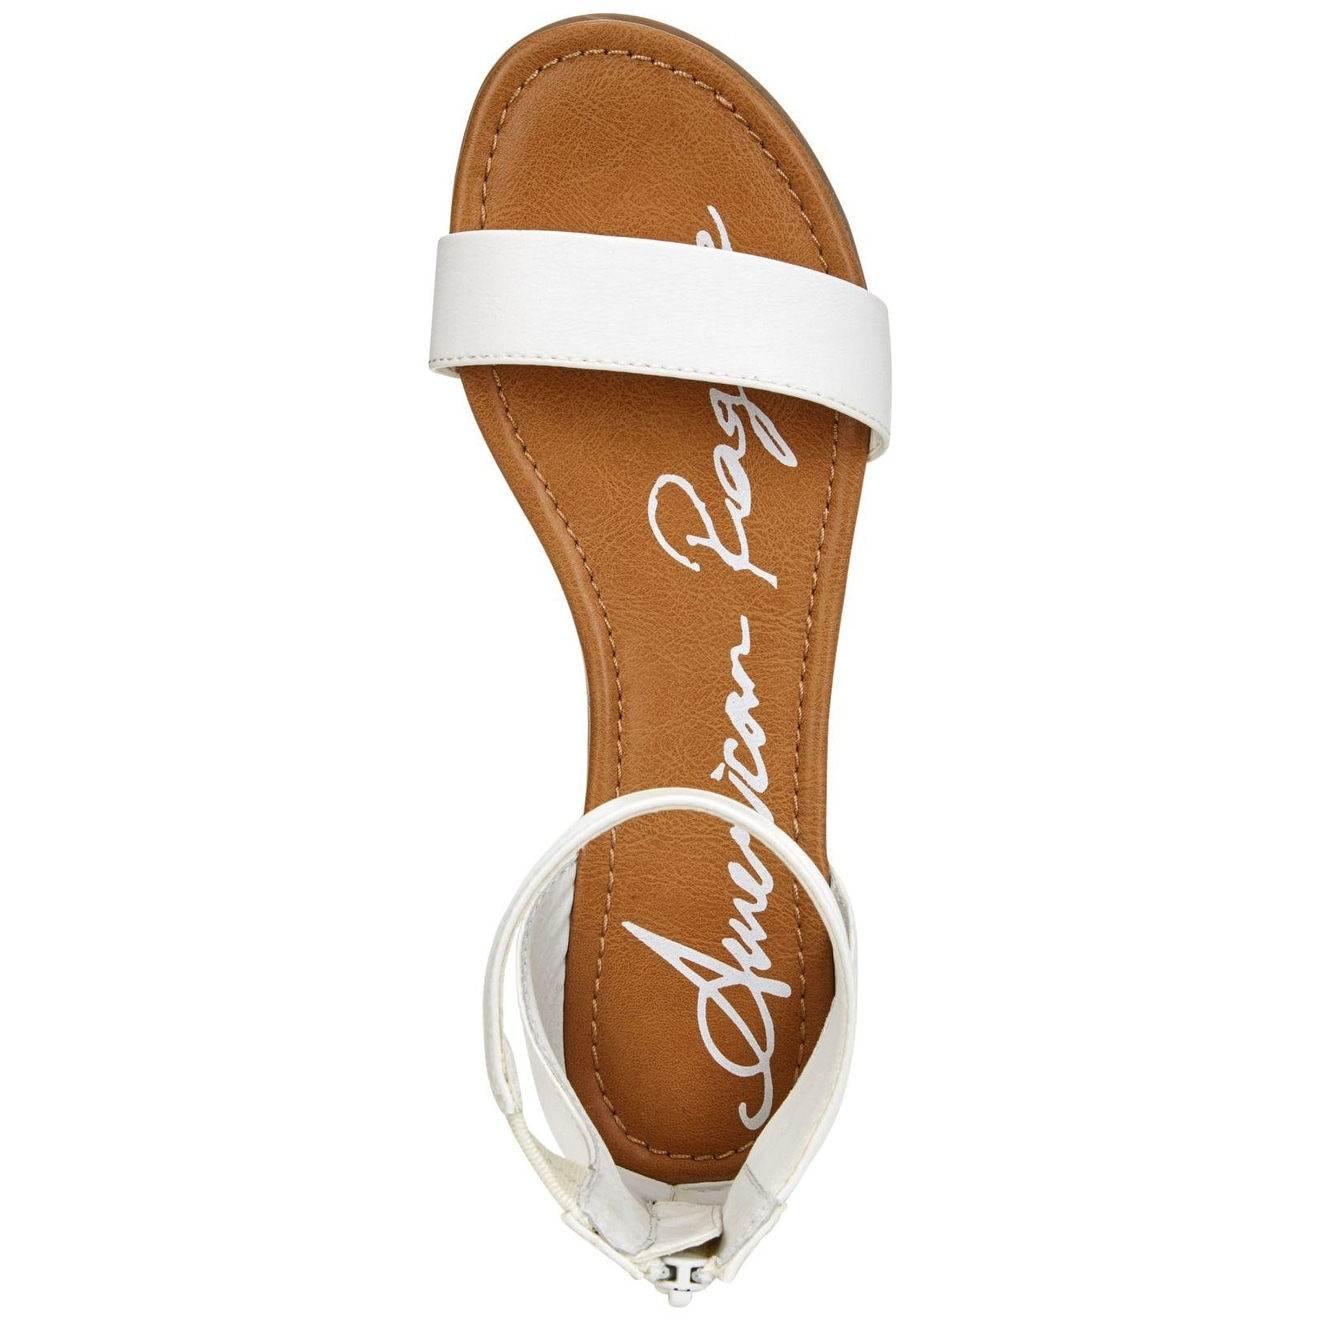 37460bc5175e Shop American Rag Womens Keley 2 Open Toe Casual Ankle Strap Sandals - Free  Shipping On Orders Over  45 - Overstock - 21154748